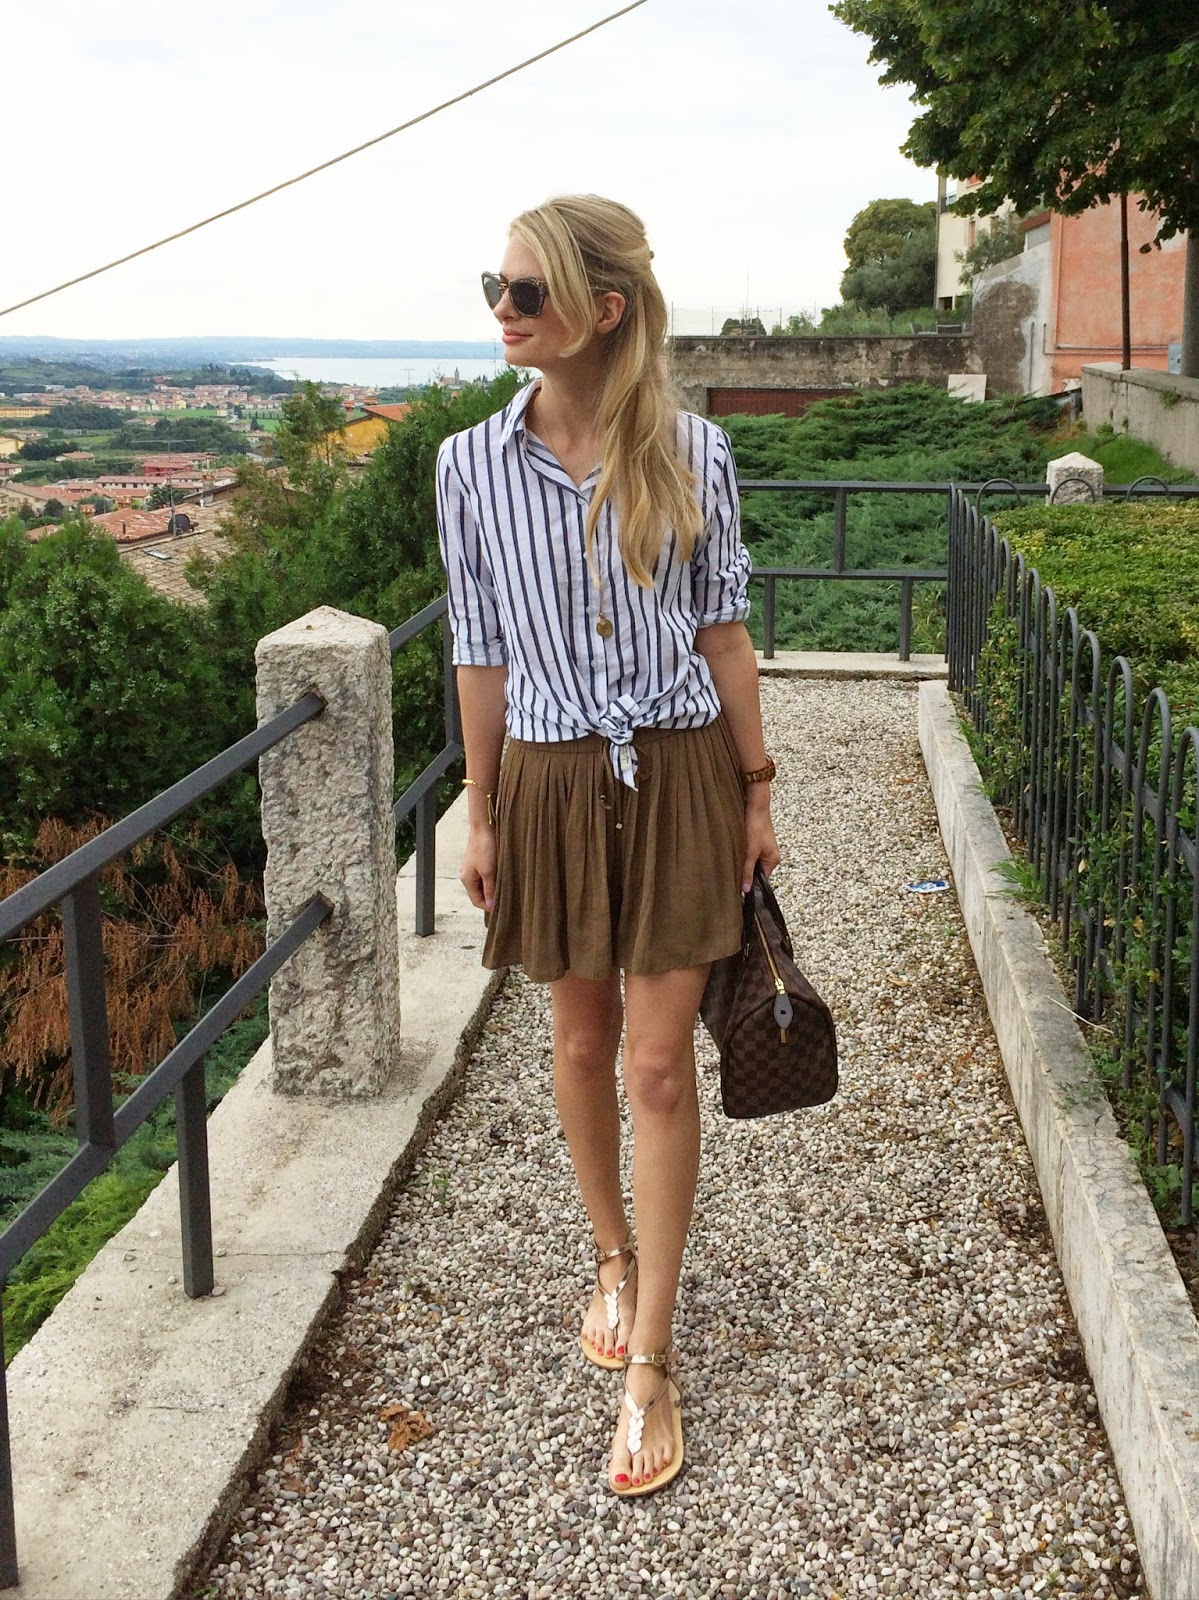 h&m shirt, H&M striped shirts, monica vinader, monica vinader necklace, street style, fashion blogger, skirt and shirt, toe sandals, golden sandals, pleated skirt, pleated shorts, zara pleated skirt